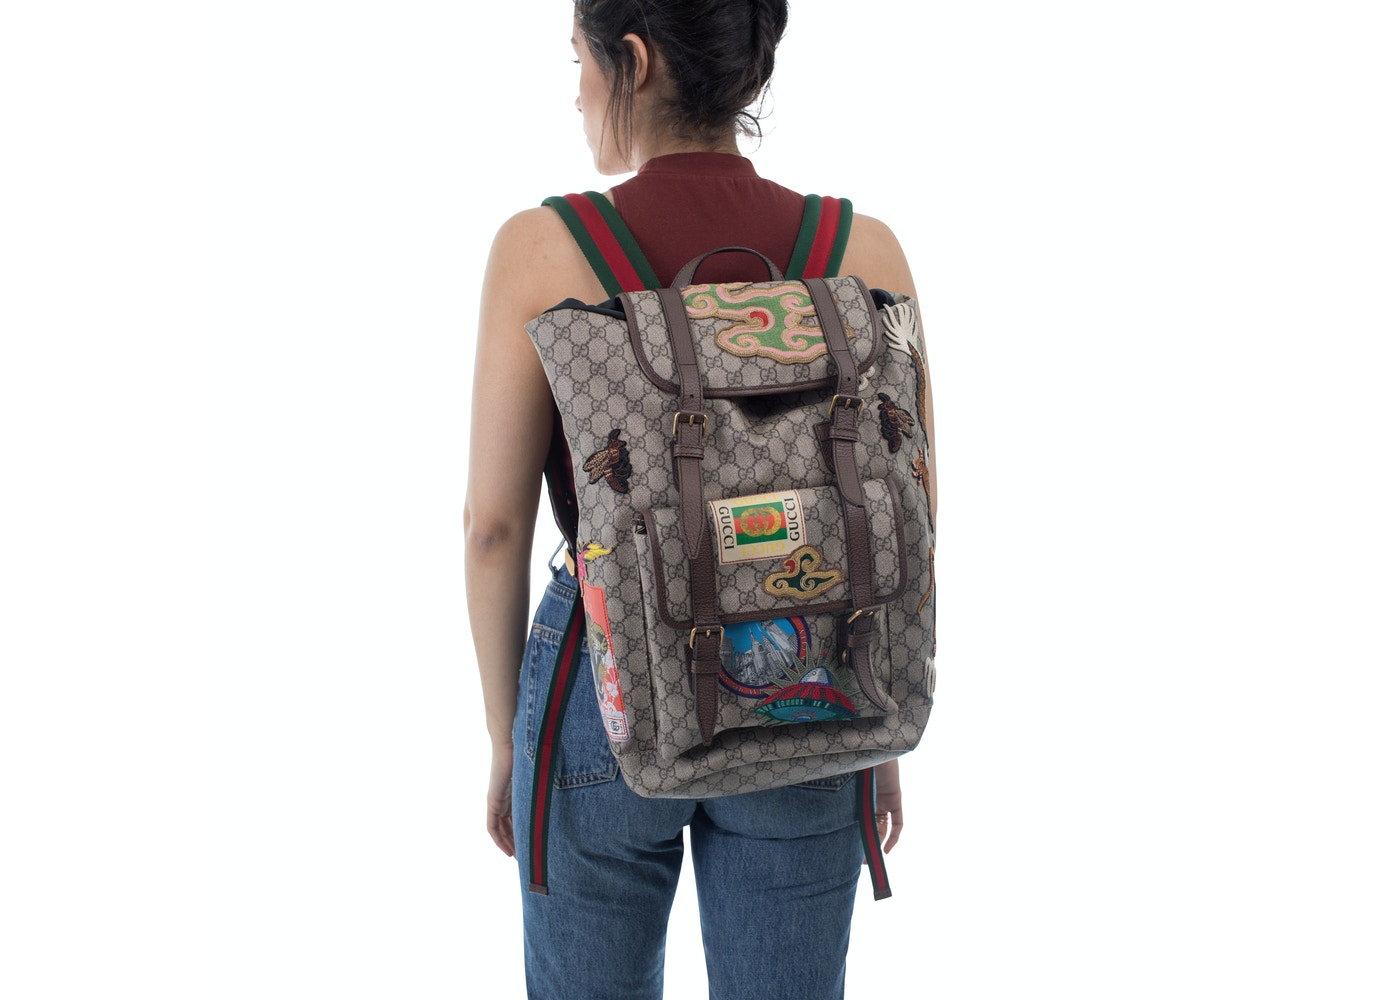 512f863aaf12 Gucci Courrier Soft Backpack GG Supreme Embroidered Patches Beige Ebony  Multicolor